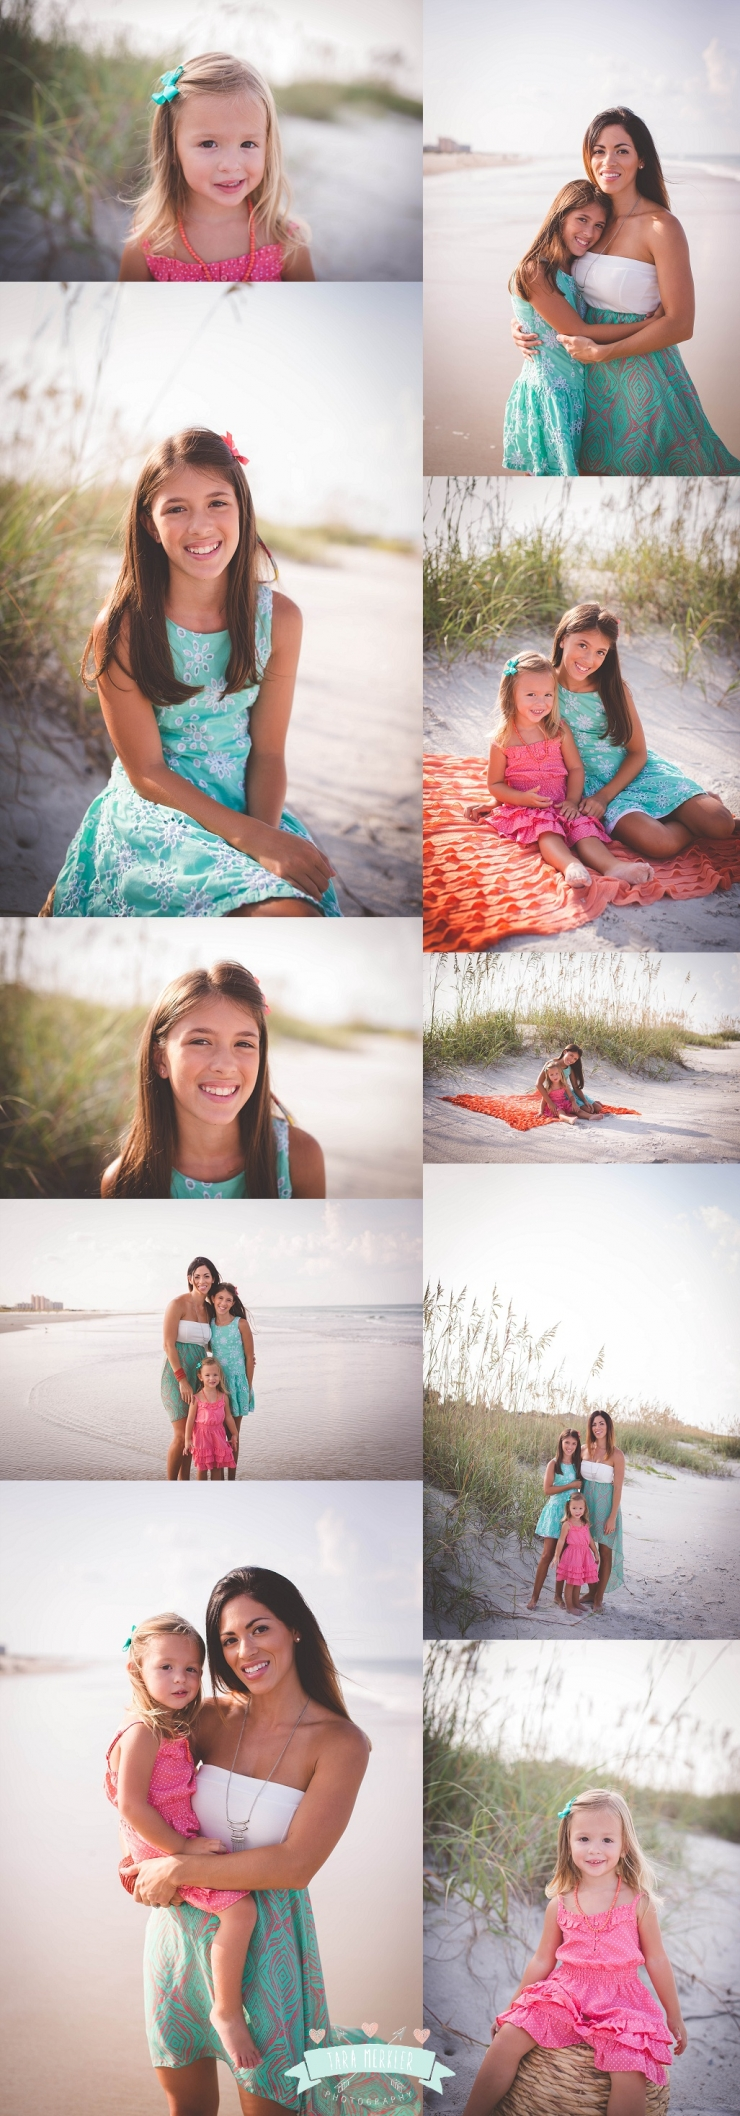 Stanek Family Beach  Session Tara Merkler Photography Orlando, Florida Children